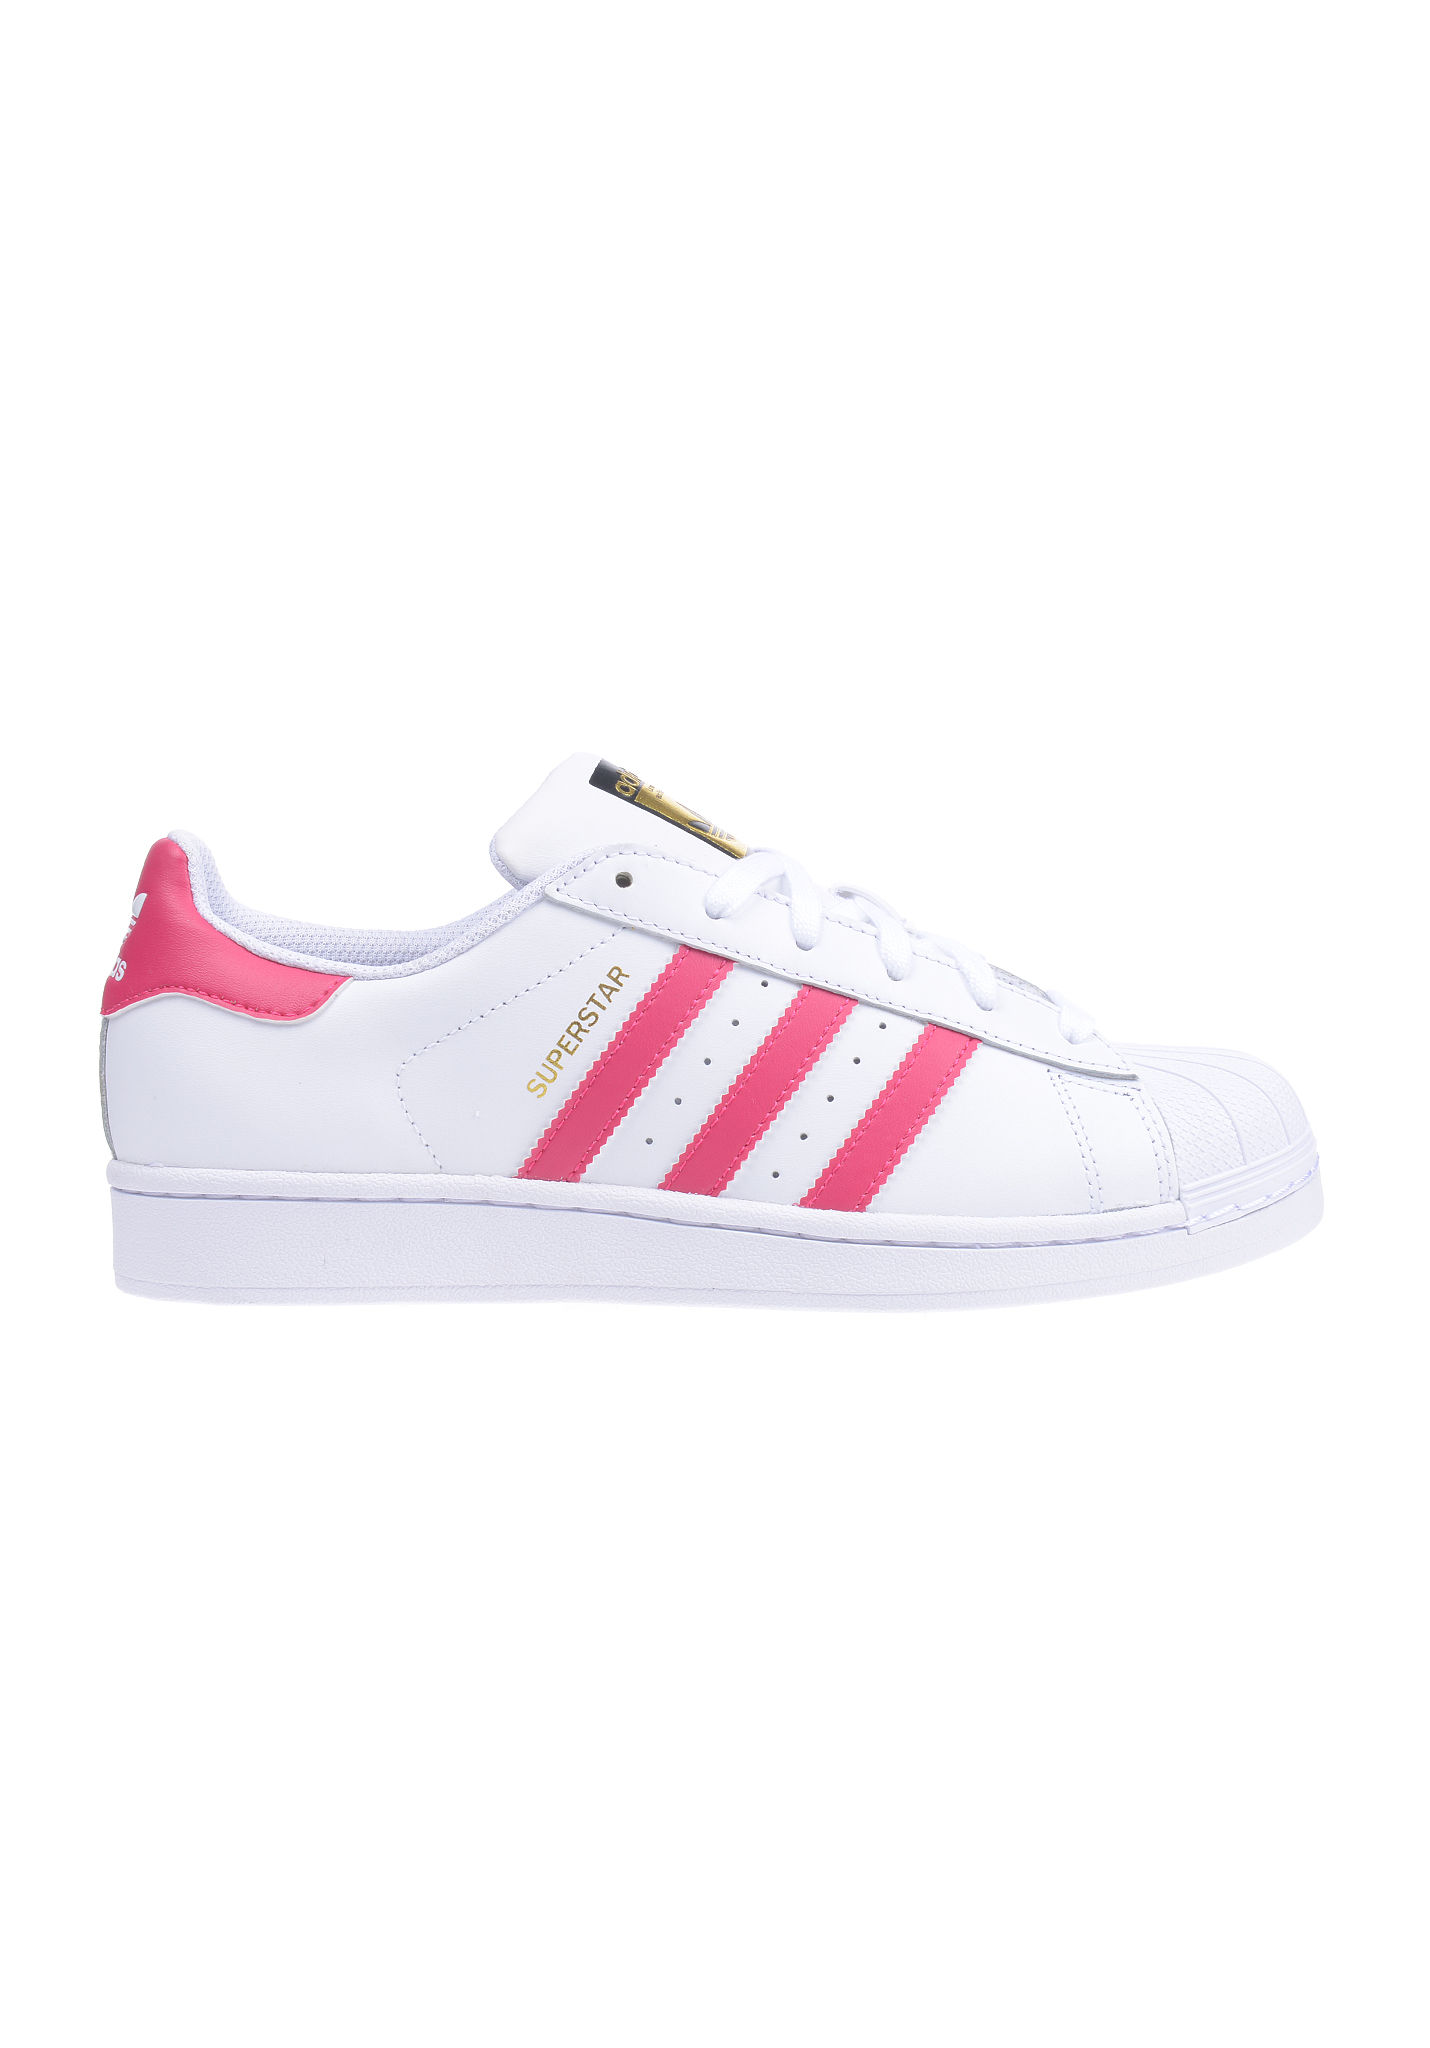 ADIDAS Superstar Foundation - Sneakers - White